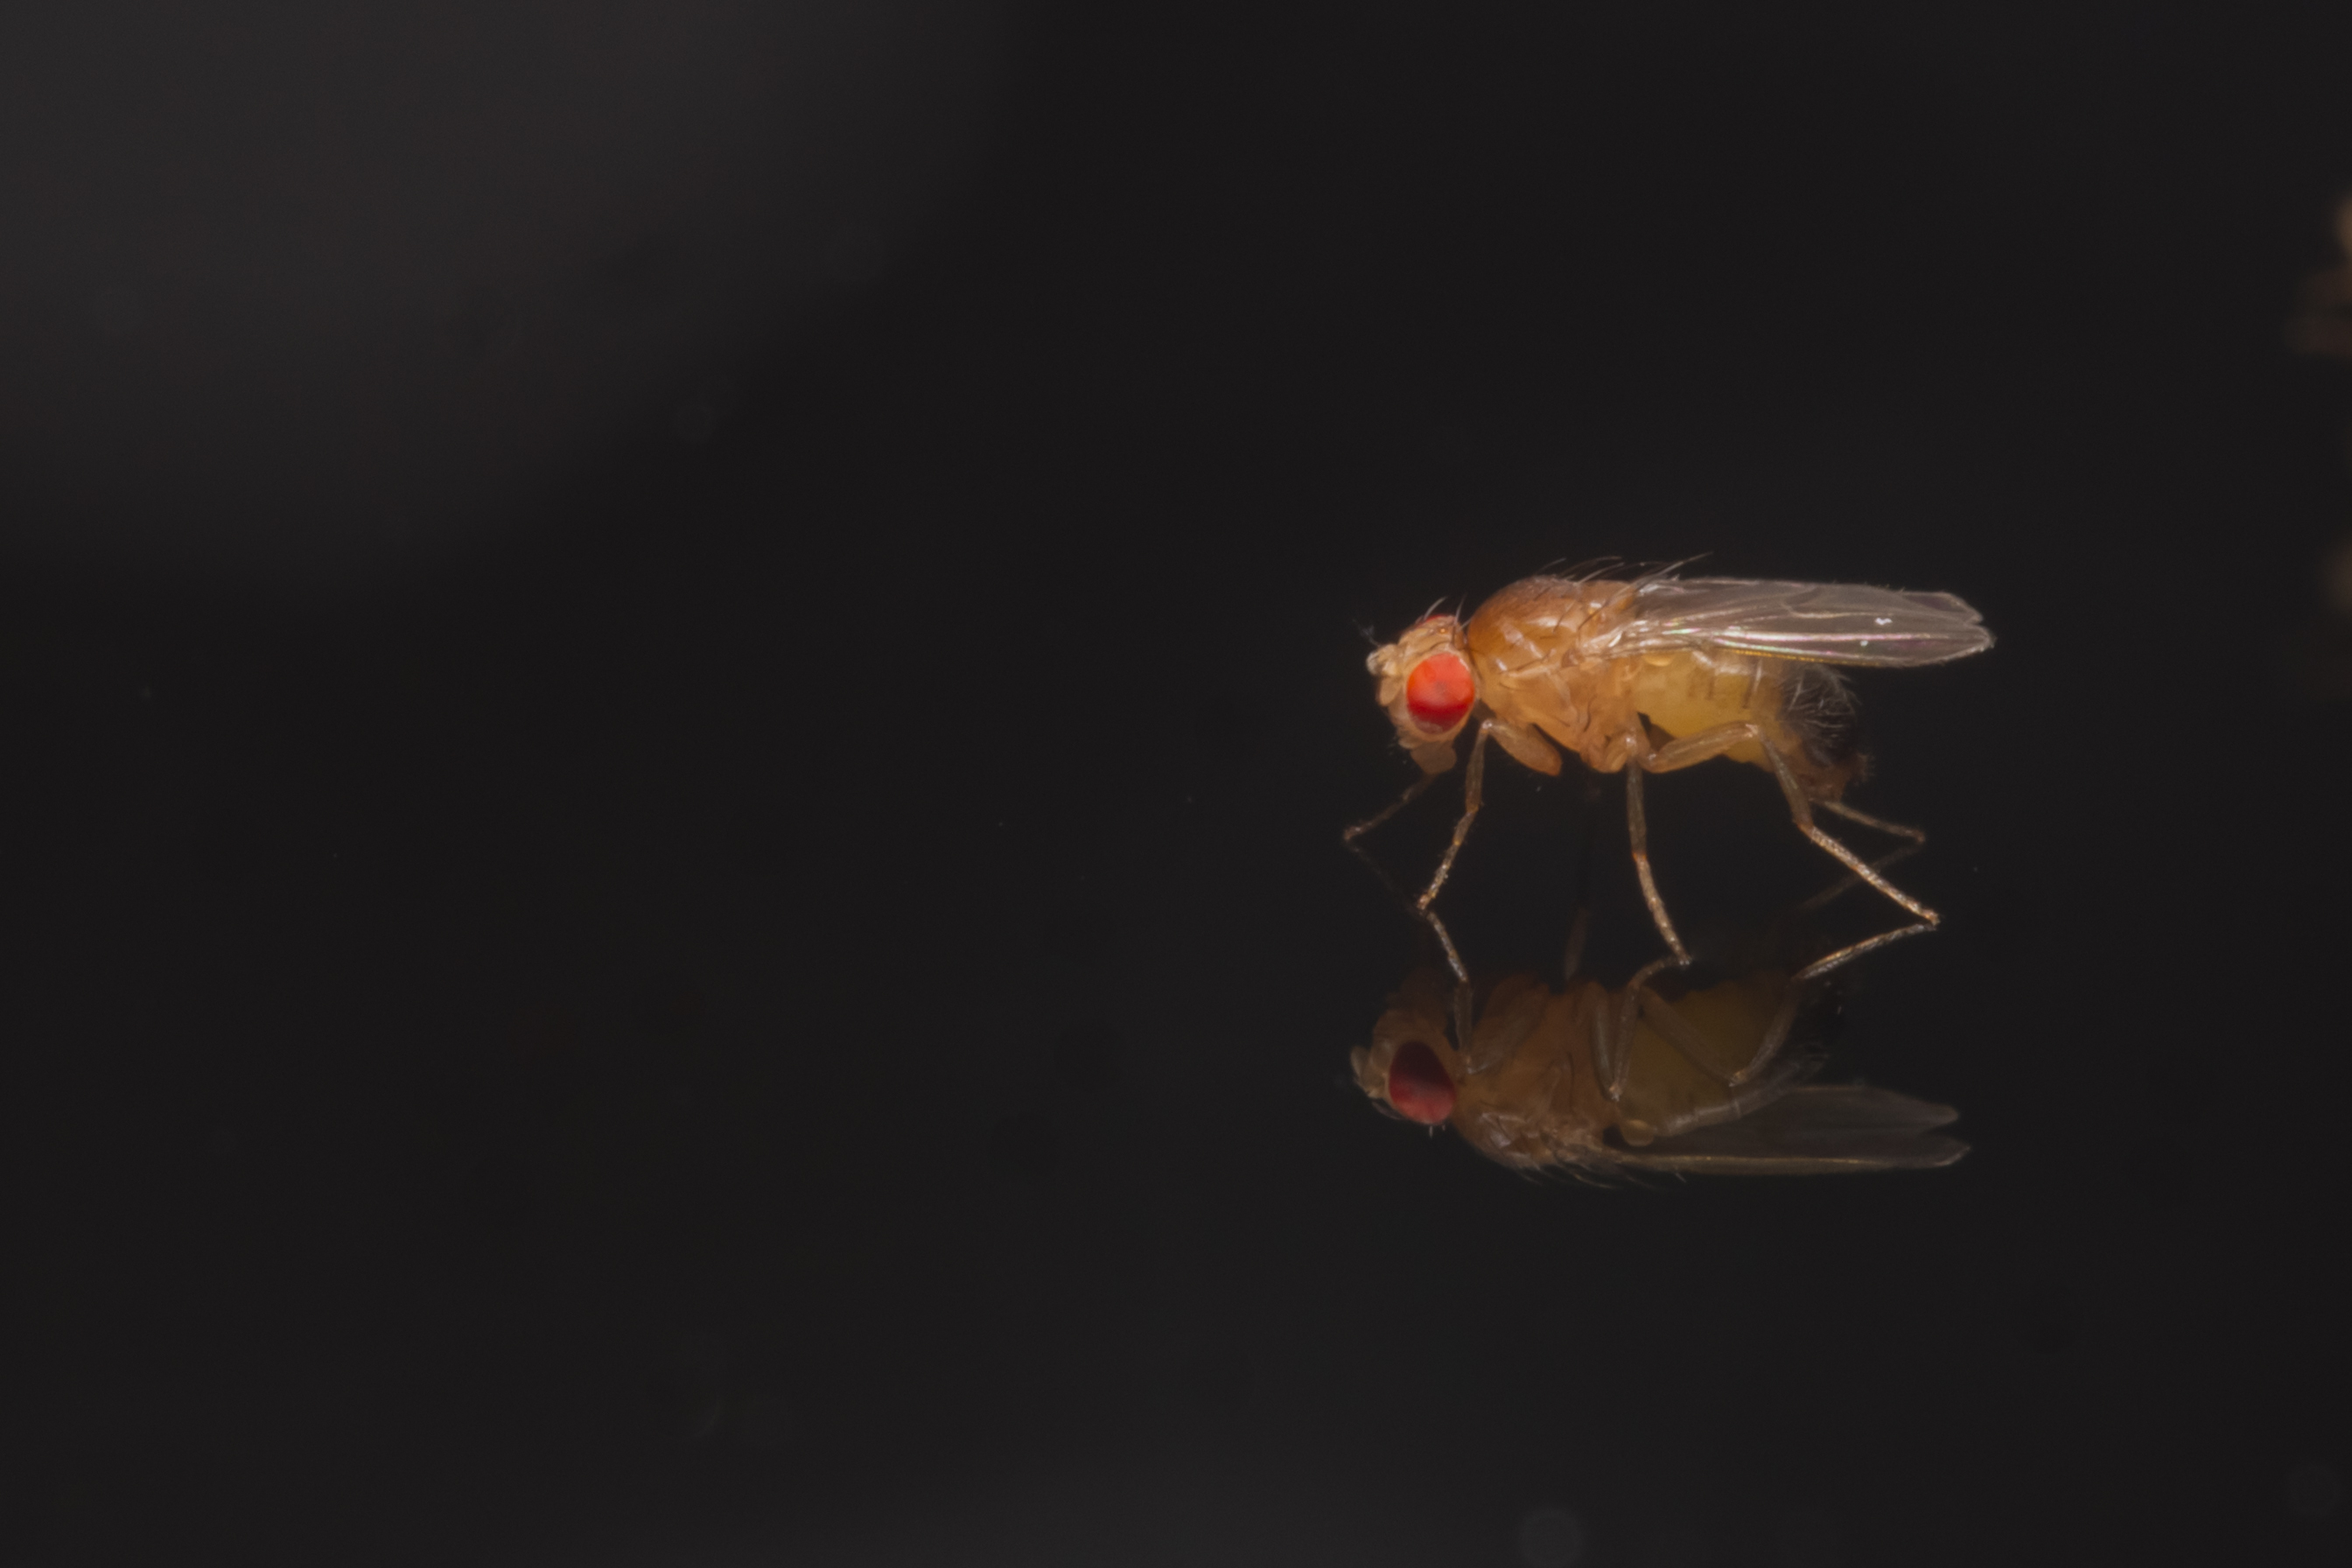 how to attract and kill fruit flies